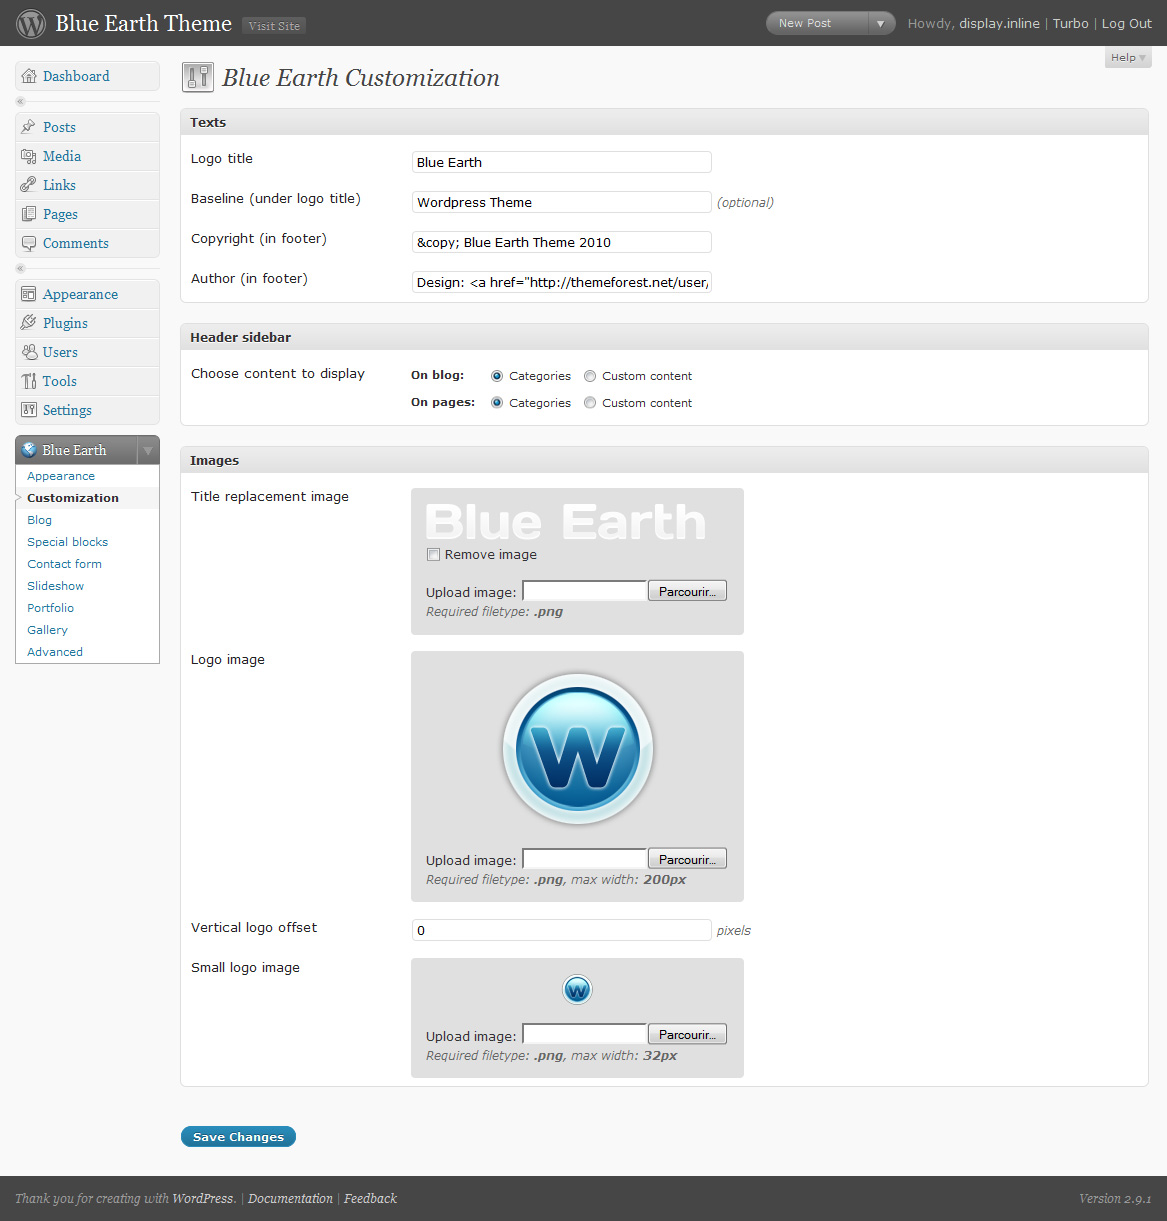 Blue Earth Wordpress theme - Customization admin panel